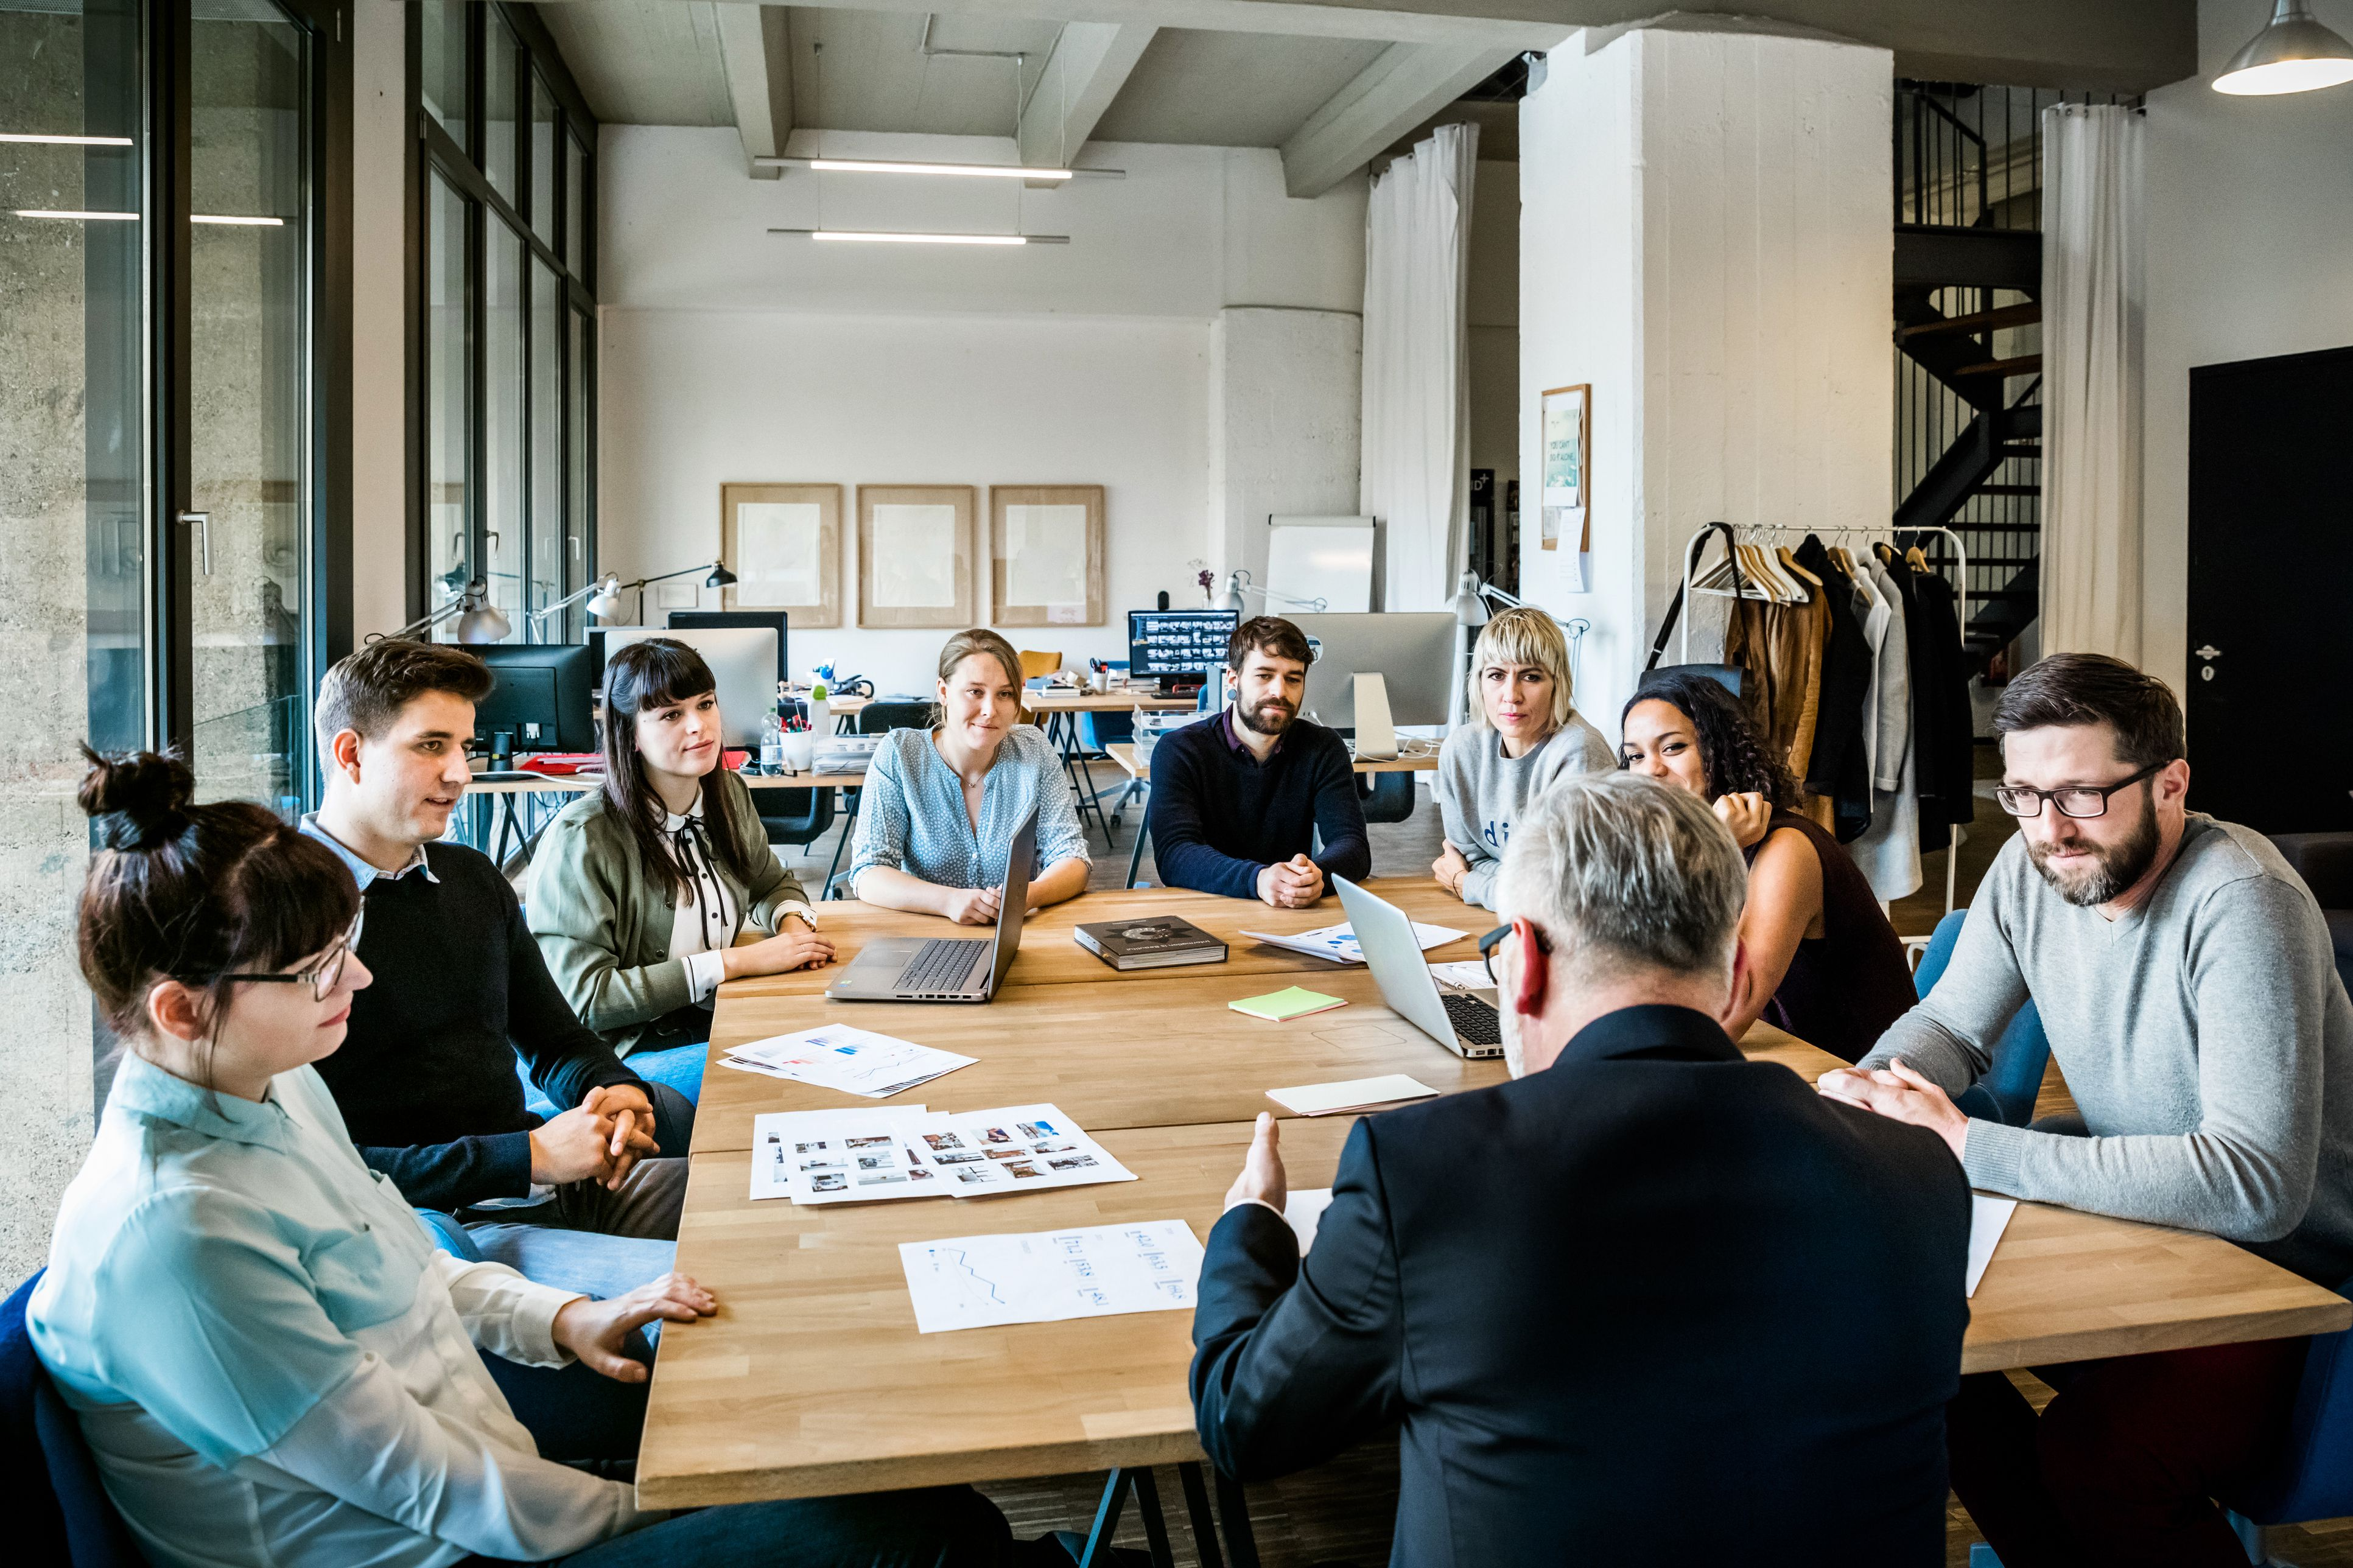 New business meeting on a conference table